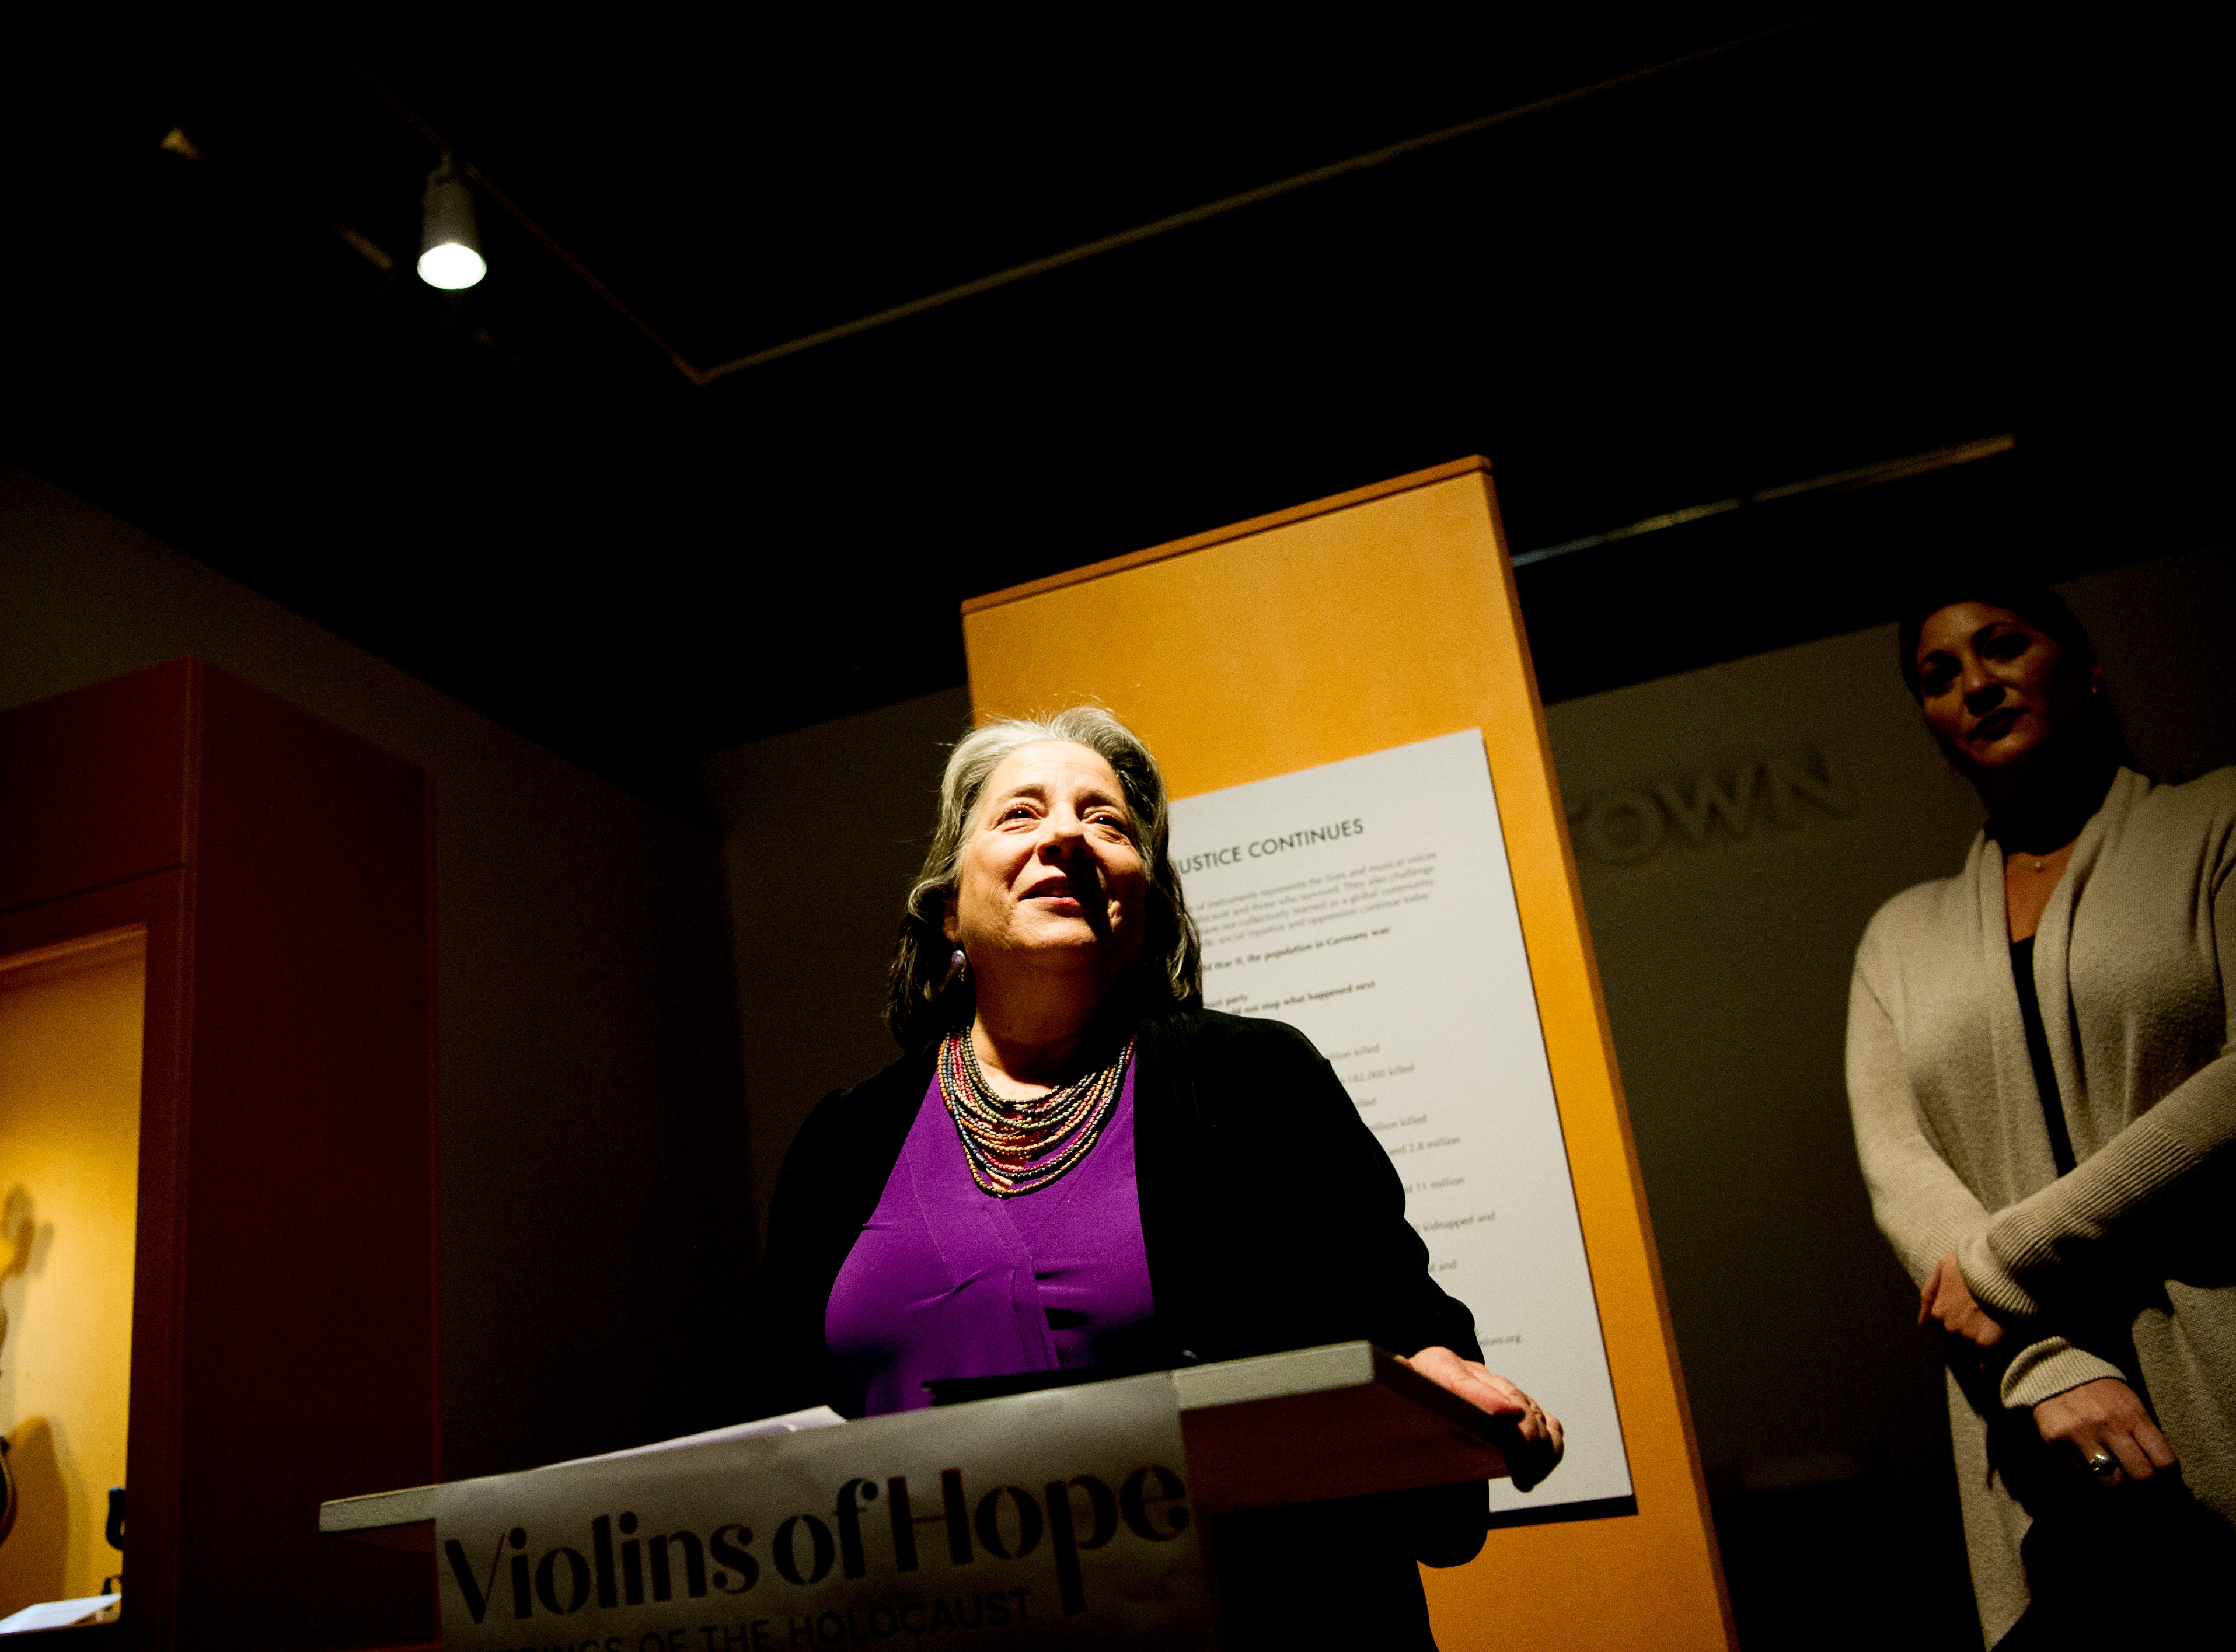 Knoxville Mayor Madeline Rogero speaks at the Violins of Hope exhibit at the University of Tennessee Downtown Gallery, 106 S. Gay St., in Knoxville, Tennessee on Friday, January 4, 2019. The exhibit, from Israel, features 38 violins that were played by Jewish musicians during the Holocaust. The display runs from Jan. 4-27.